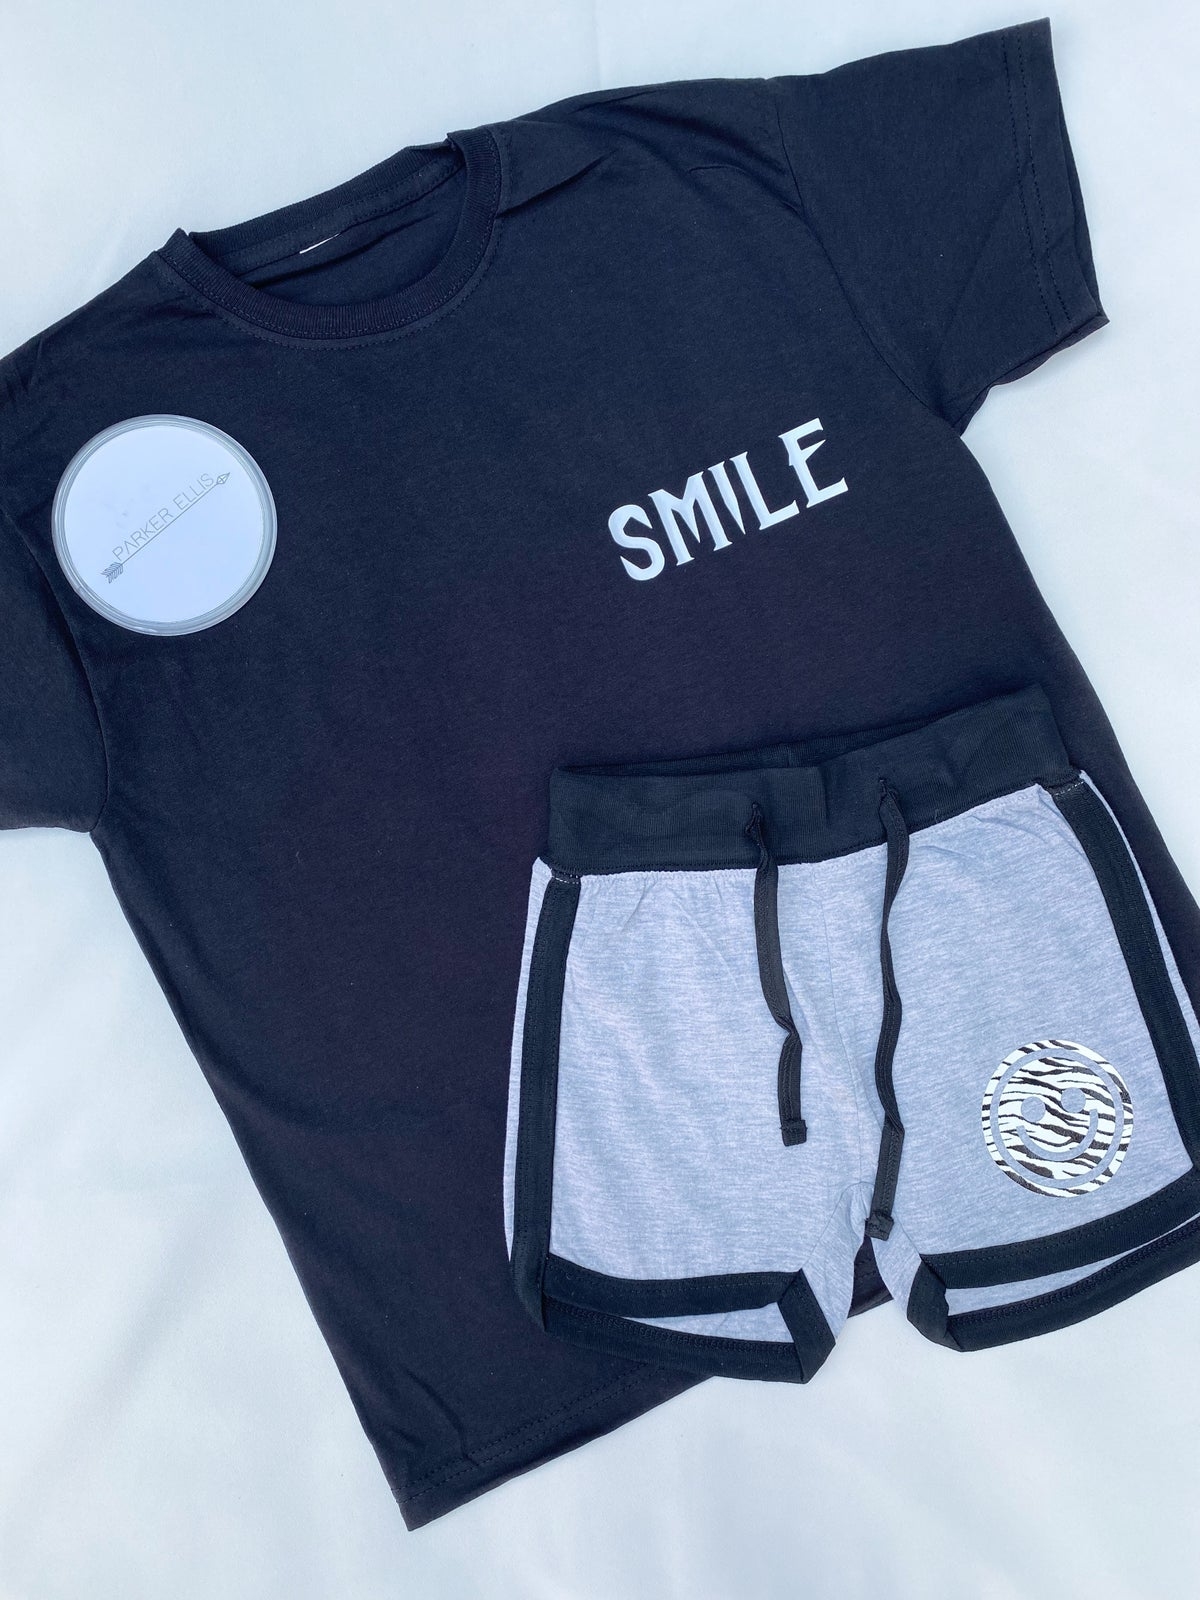 Image of Smile Shorts in Grey